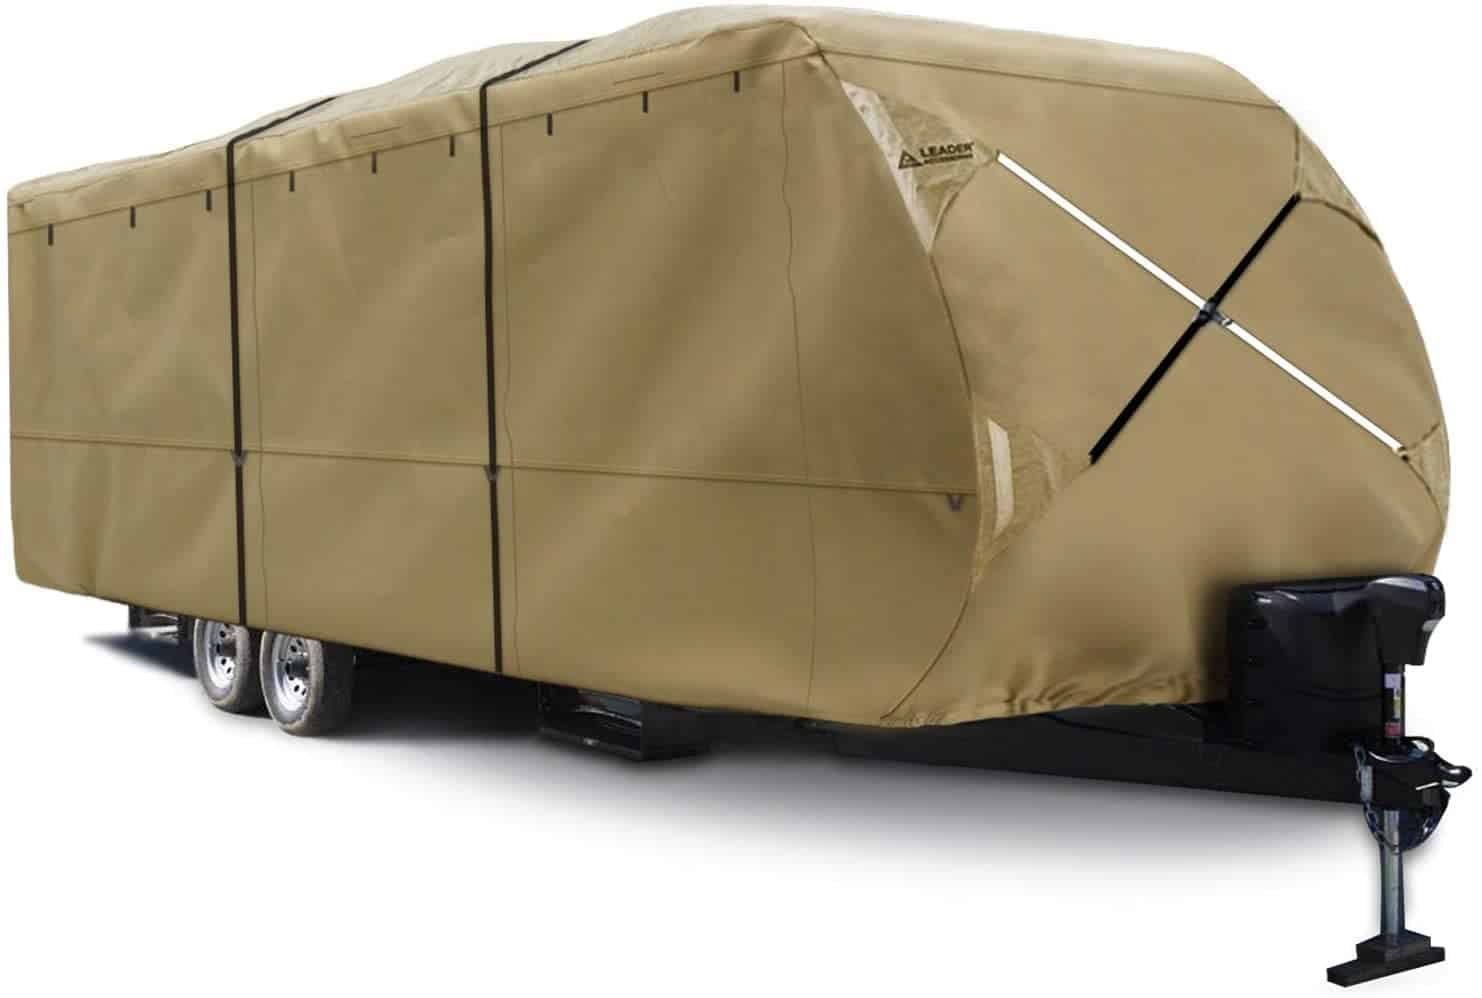 Leader Accessories Best trailer Windproof Cover 90101001